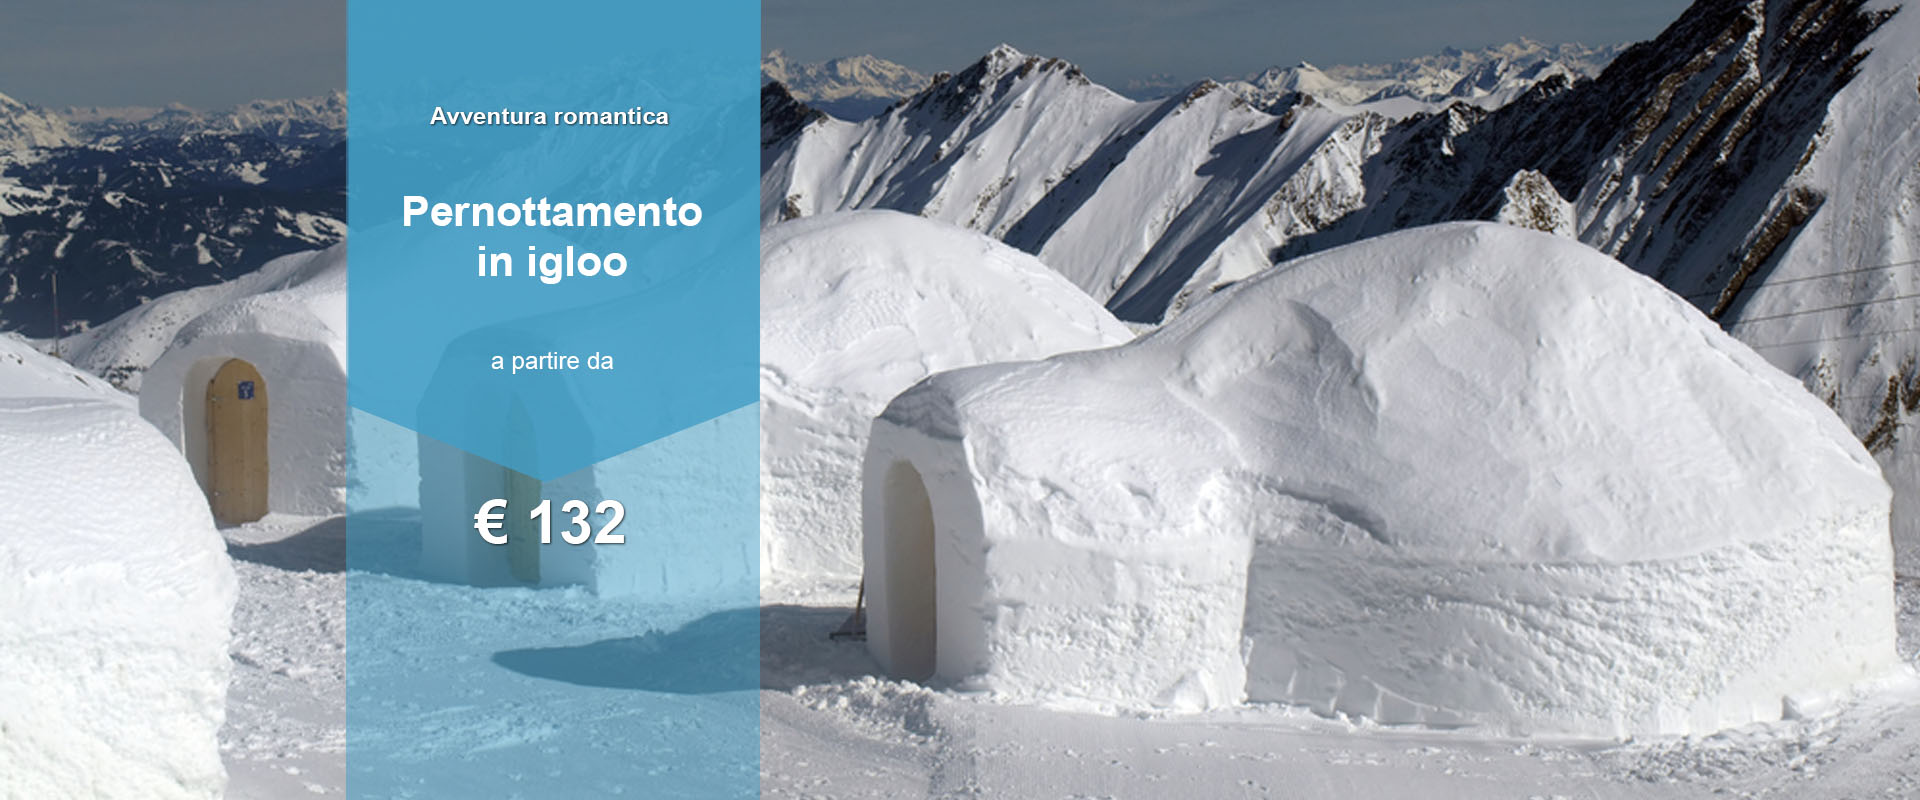 regalo notte in igloo